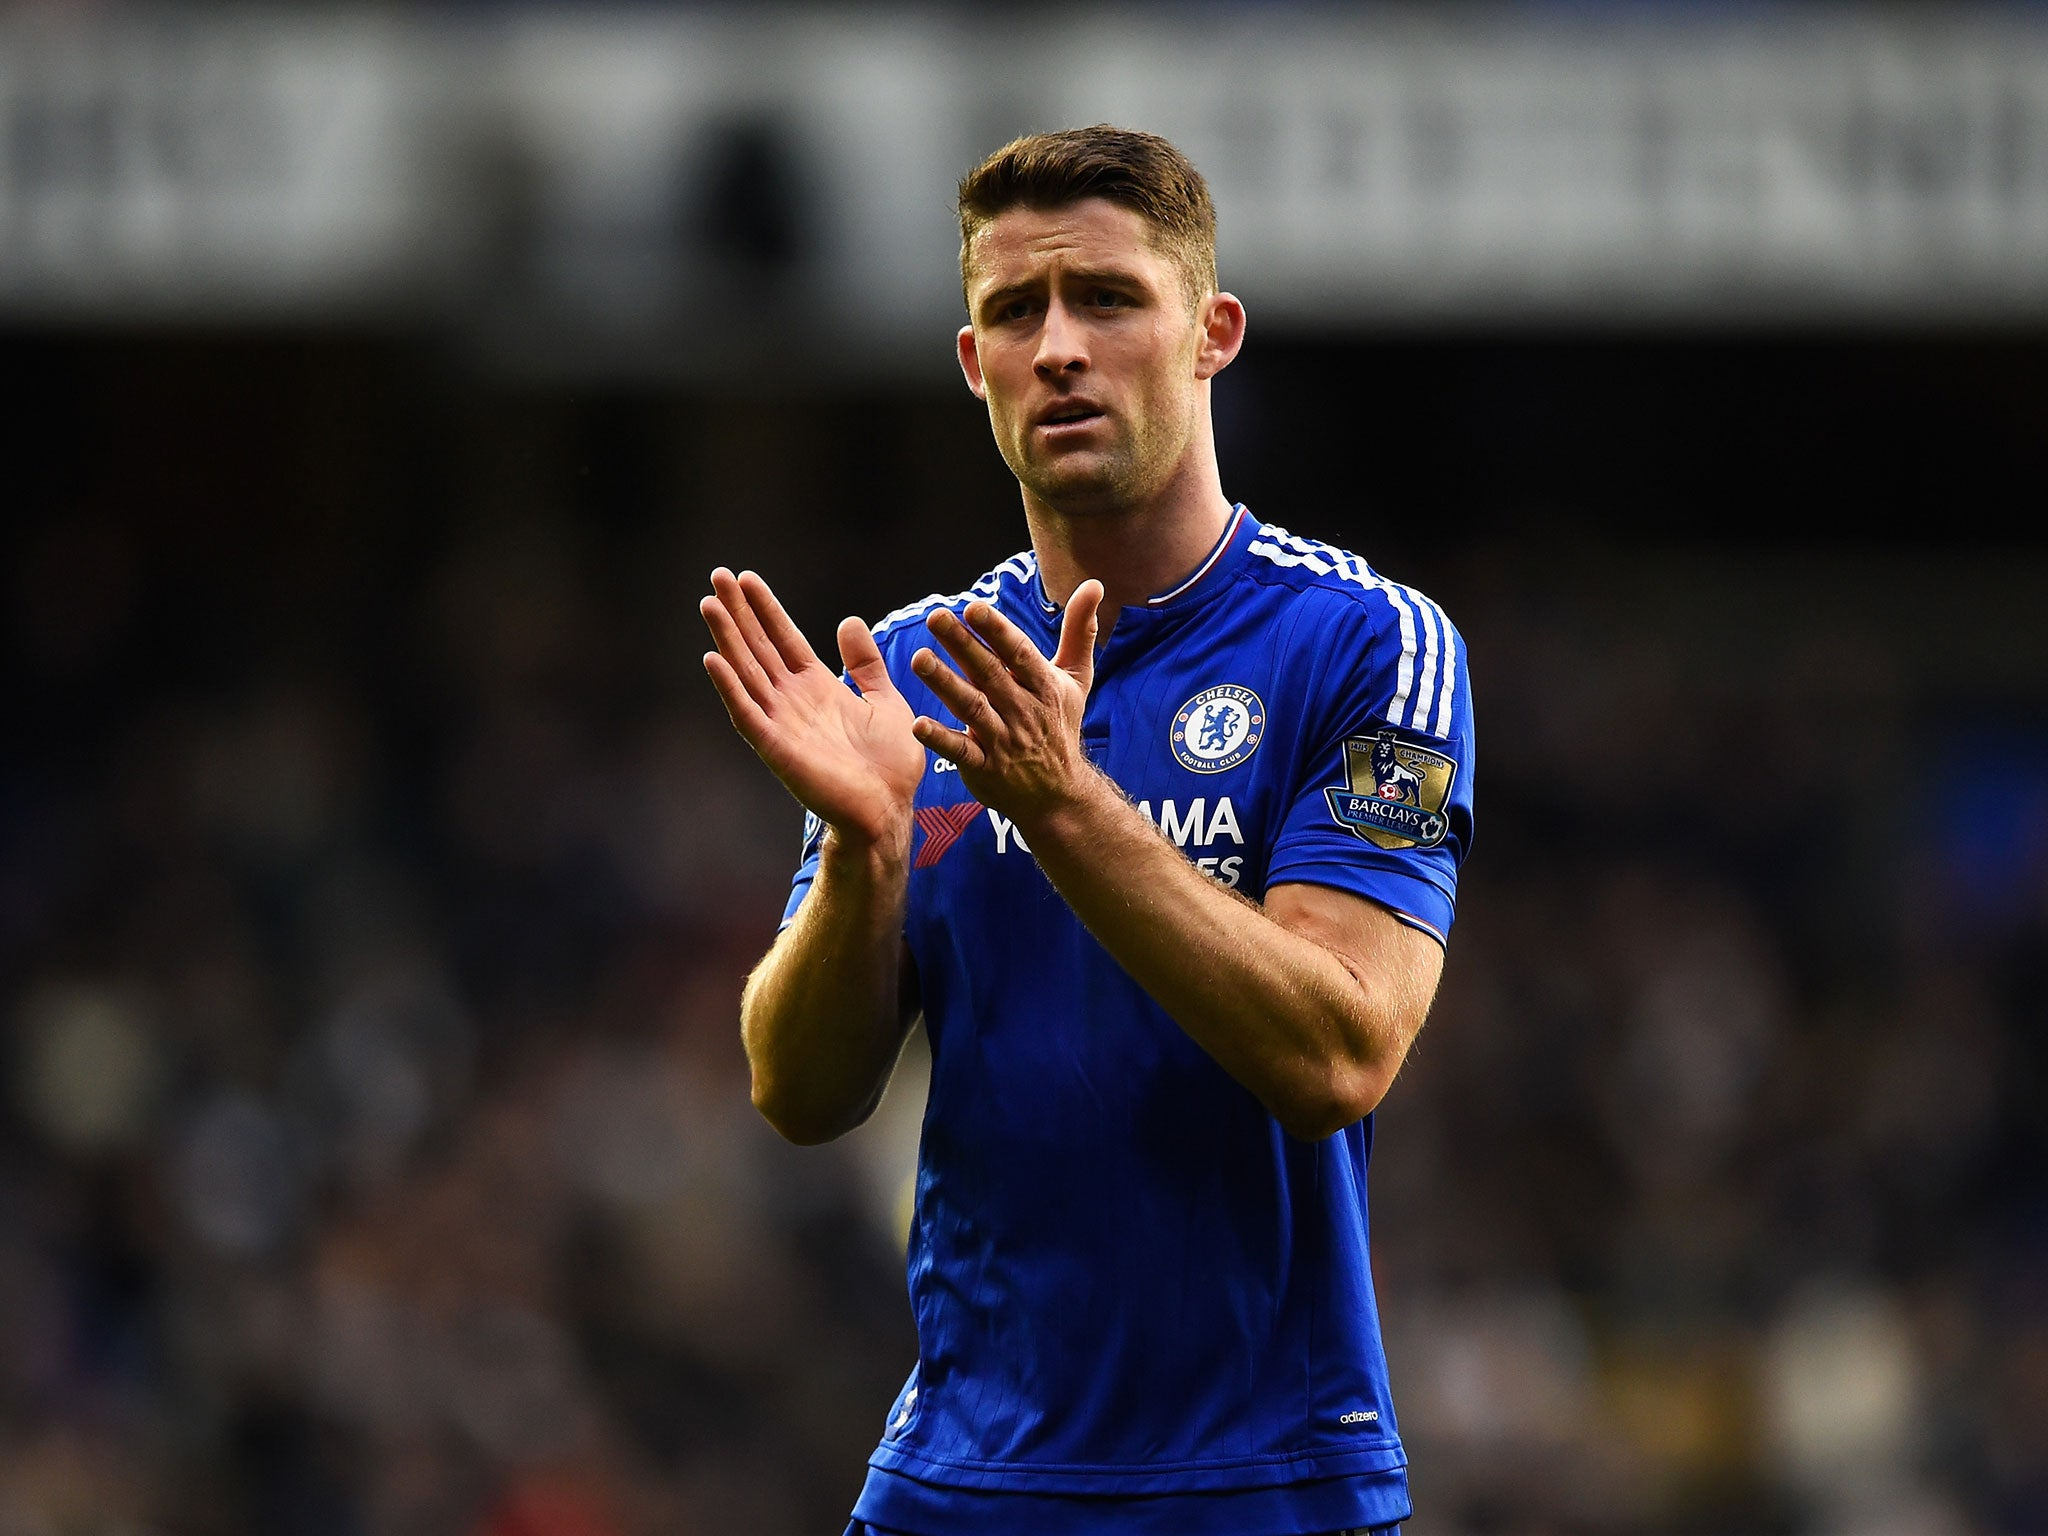 Cahill has been solid for Chelsea this season.